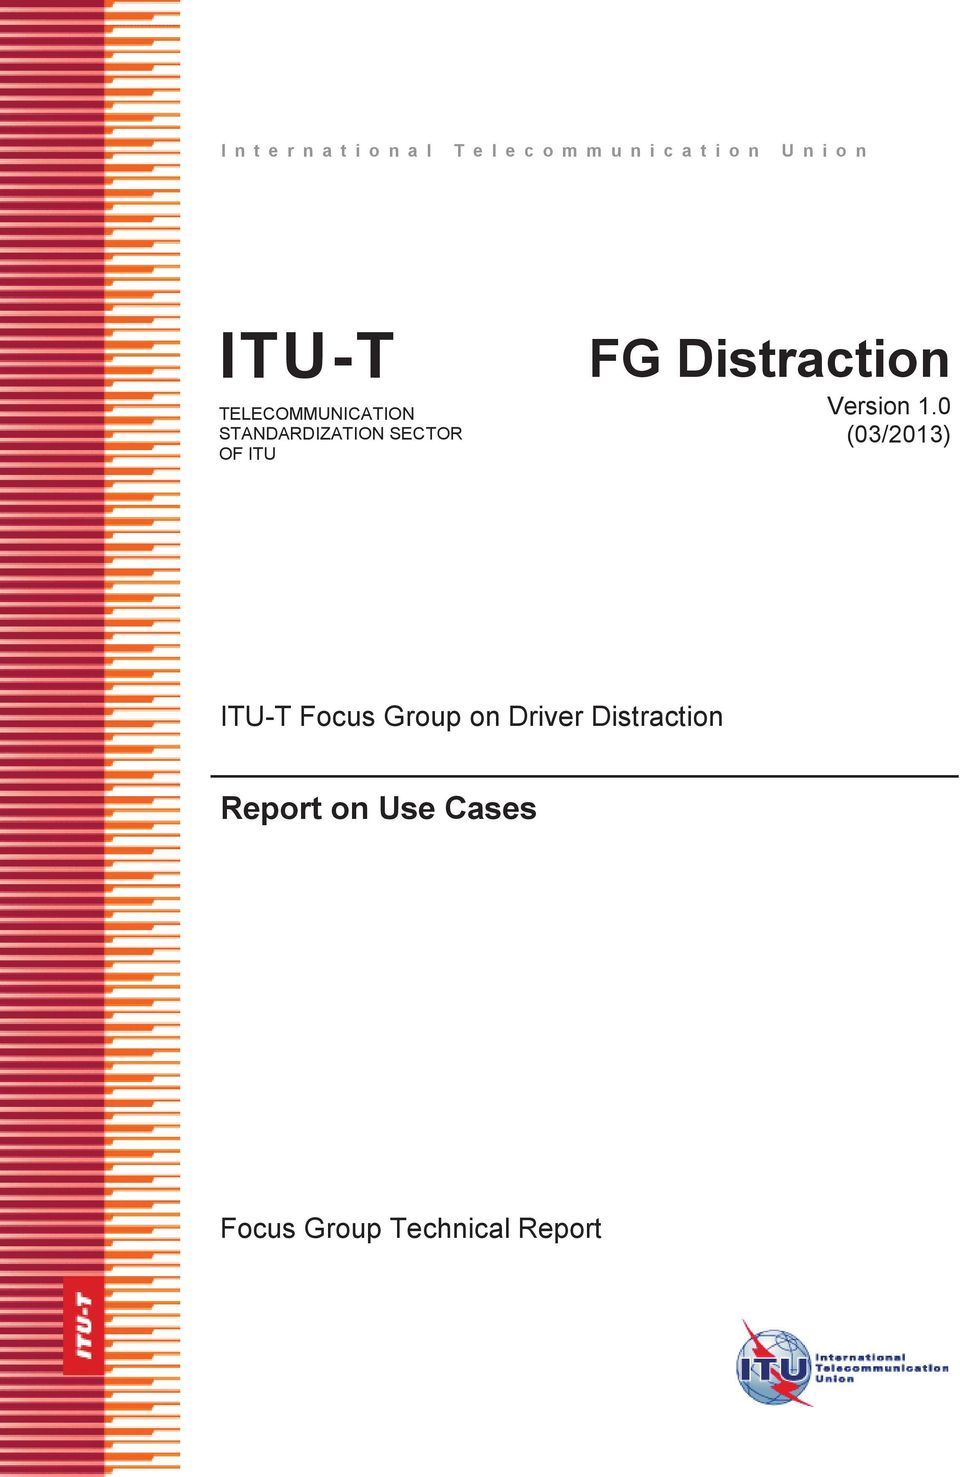 FG Distraction Version 1.